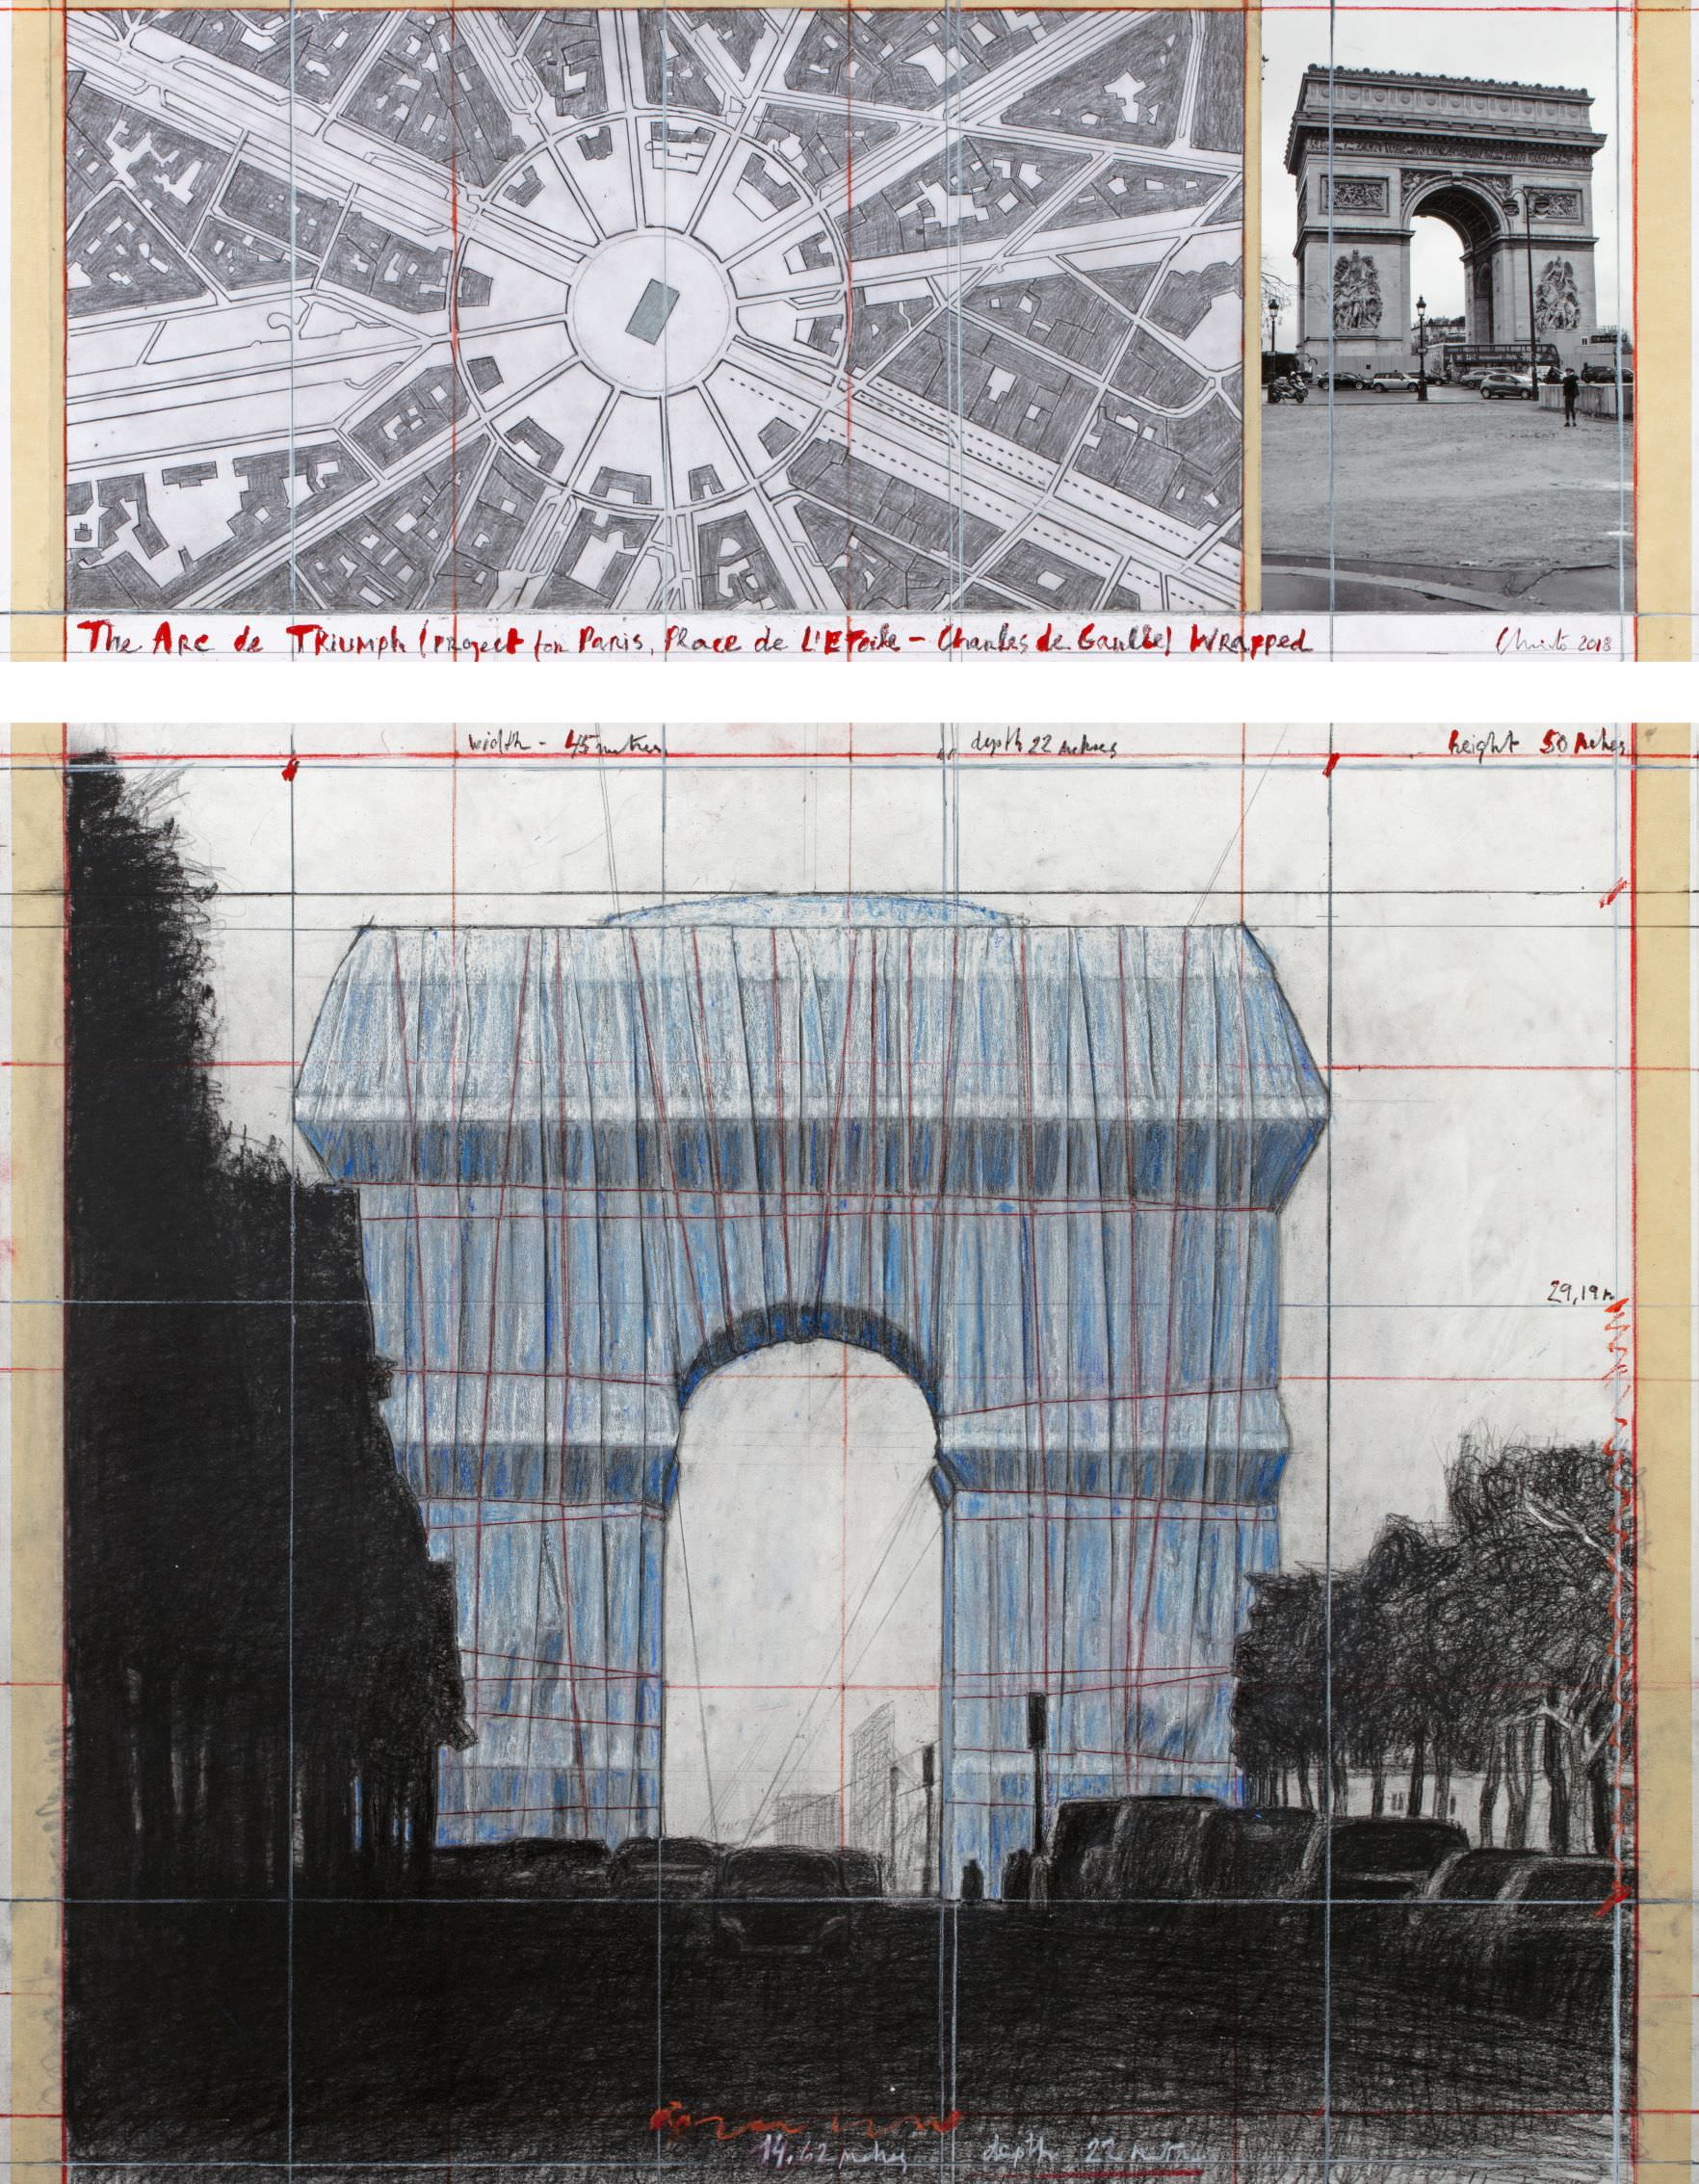 "Christo, The Arc de Triumph (Project for Paris, Place de l'Etoile – Charles de Gaulle) Wrapped. Collage 2018 in two parts 12 x 30 1/2"" and 26 1/4 x 30 1/2"" (30.5 x 77.5 cm and 66.7 x 77.5 cm) Pencil, charcoal, wax crayon, fabric, twine, enamel paint, photograph by Wolfgang Volz, hand-drawn map and tape. Photo: André Grossmann © 2018 Christo"